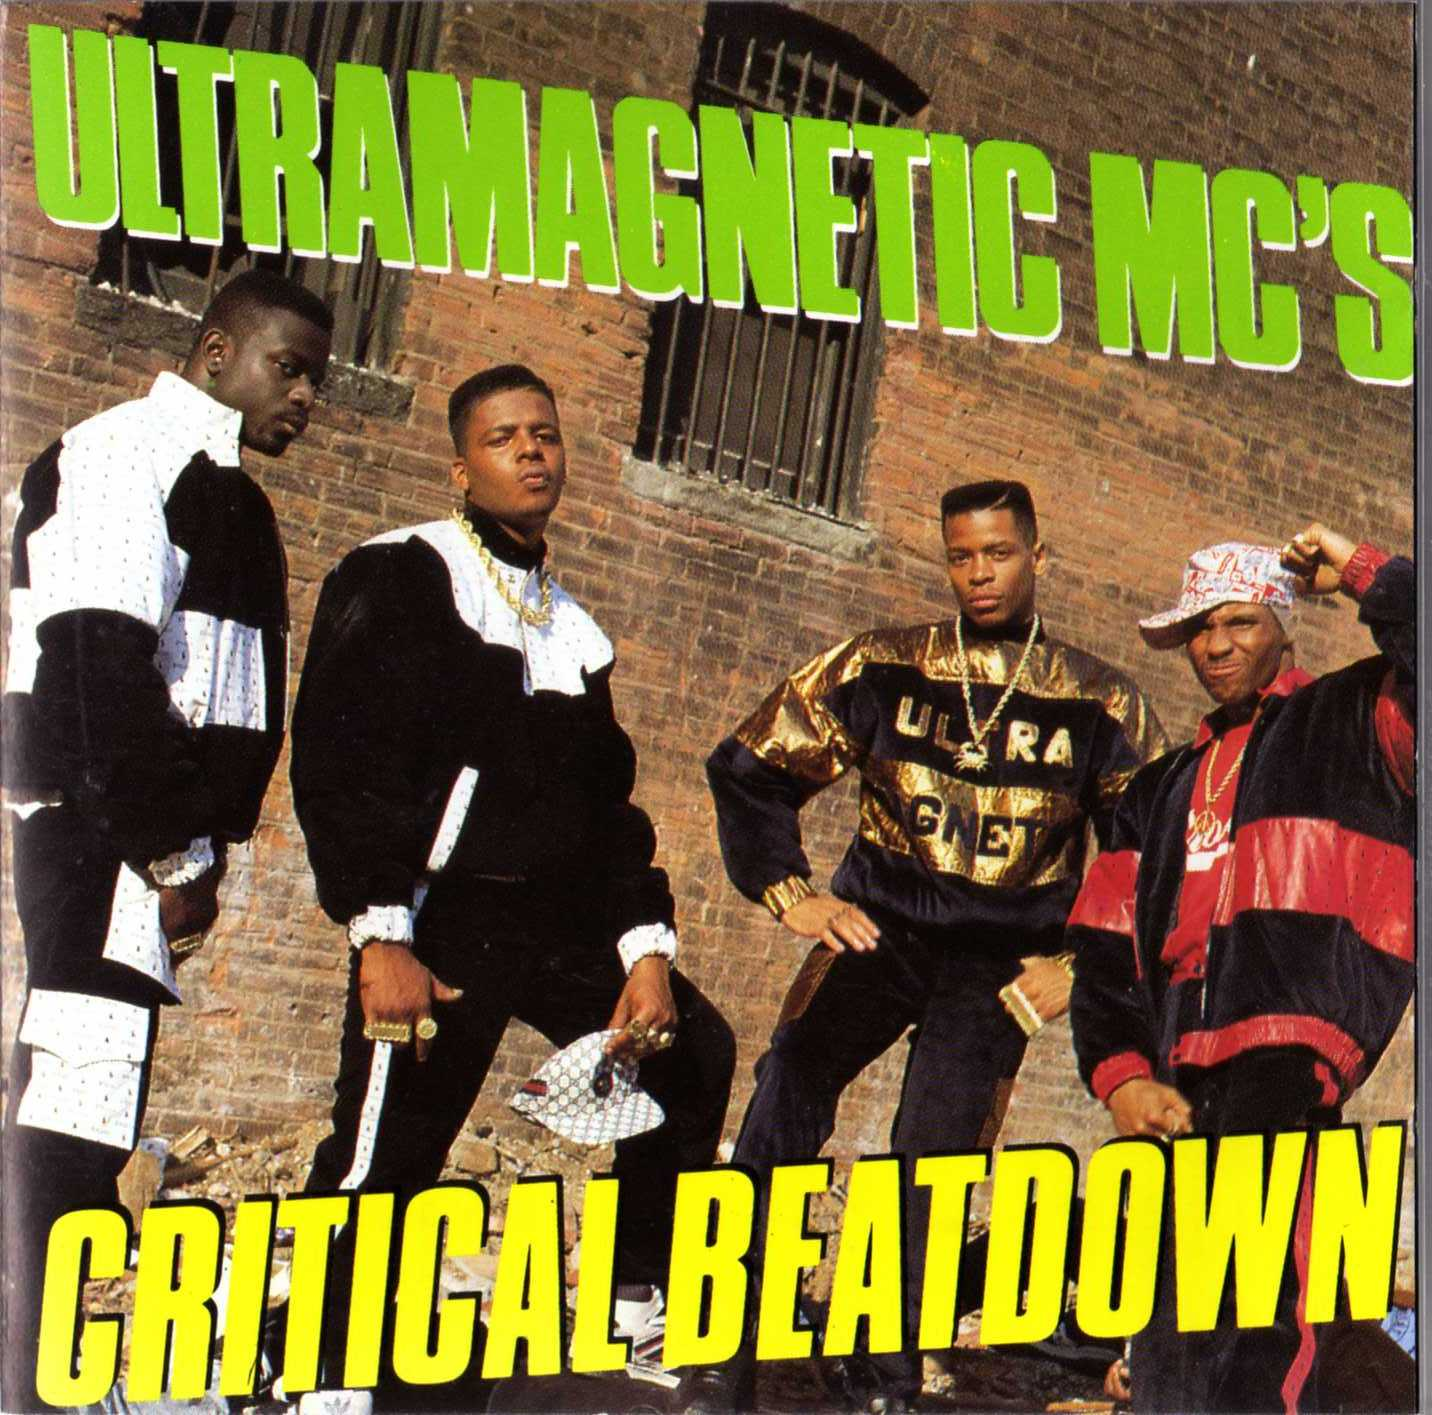 Ultramagnetic MC's - Critical Beatdown (1986)